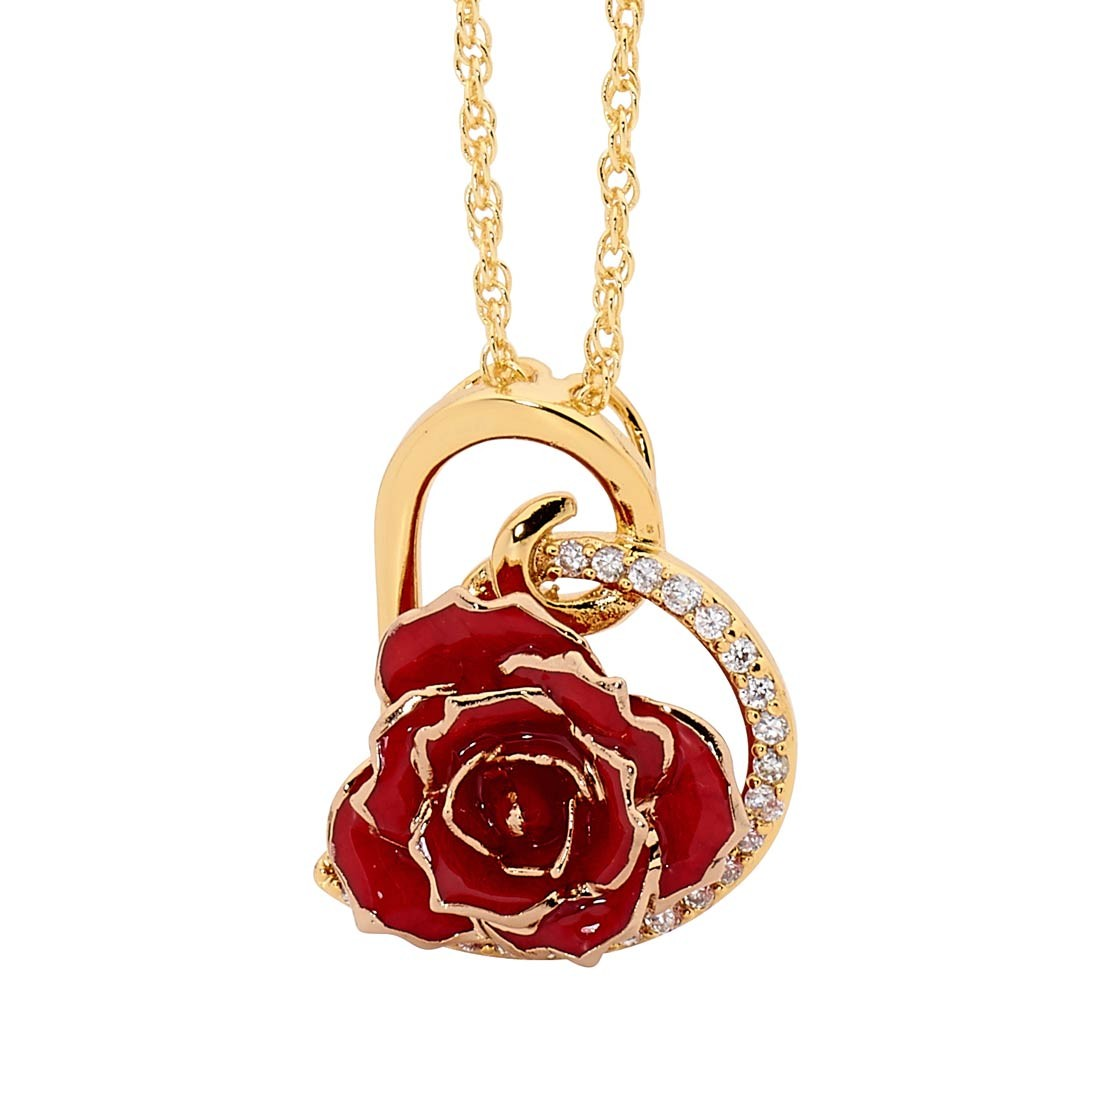 Gold and Red Pendant Necklace